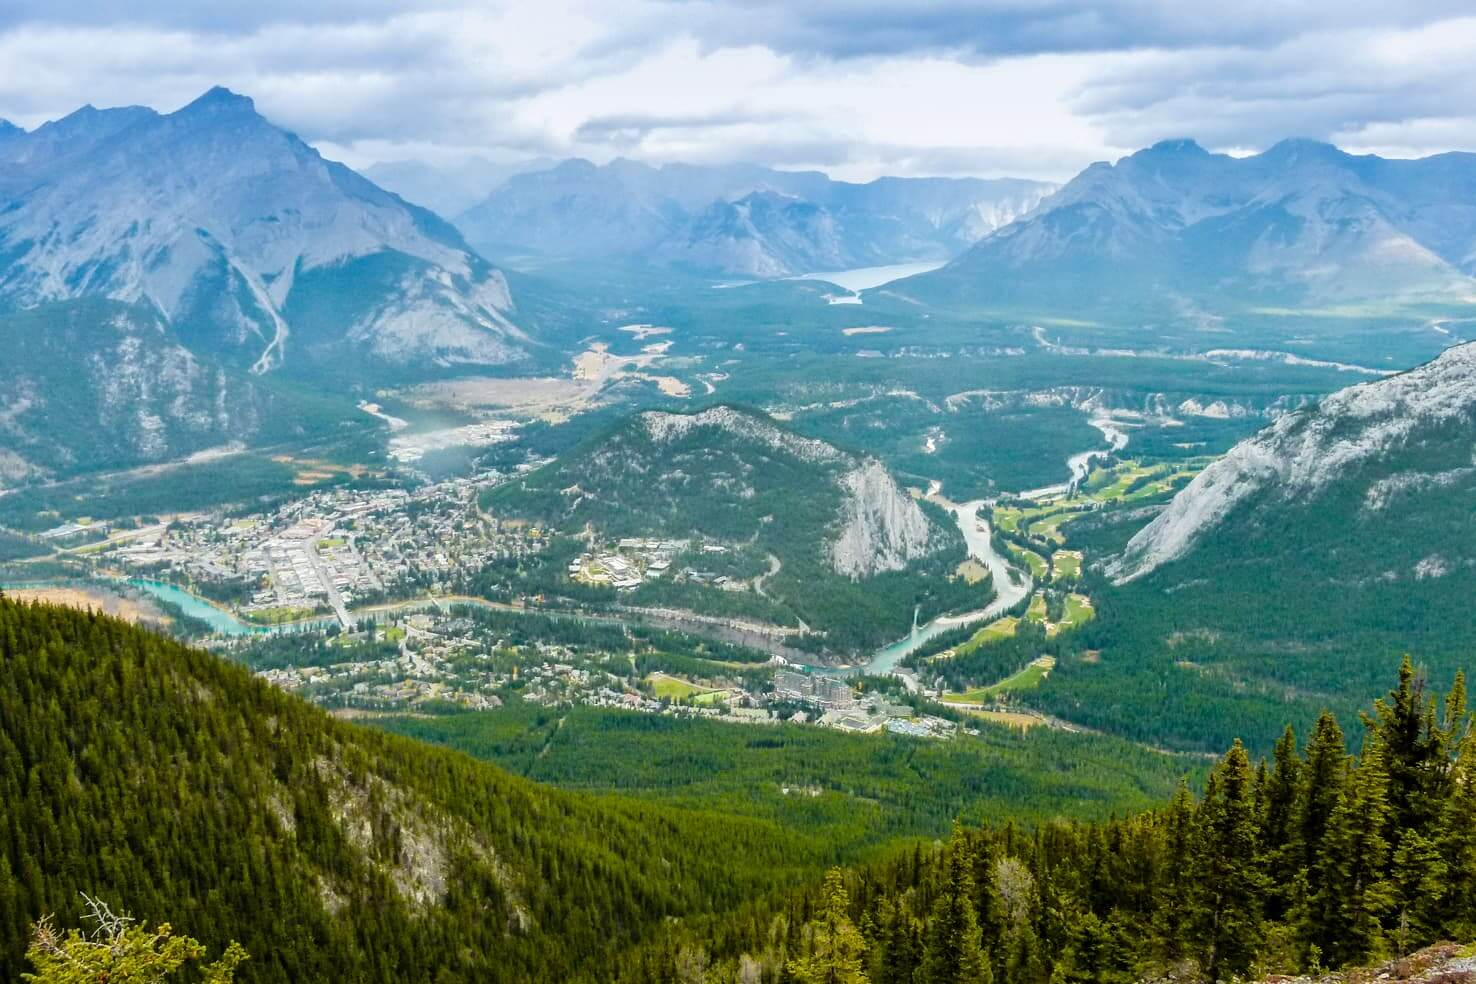 100 best things to do in Banff National Park, Canada - Hike up the Sulphur Mountain for a view of Banff